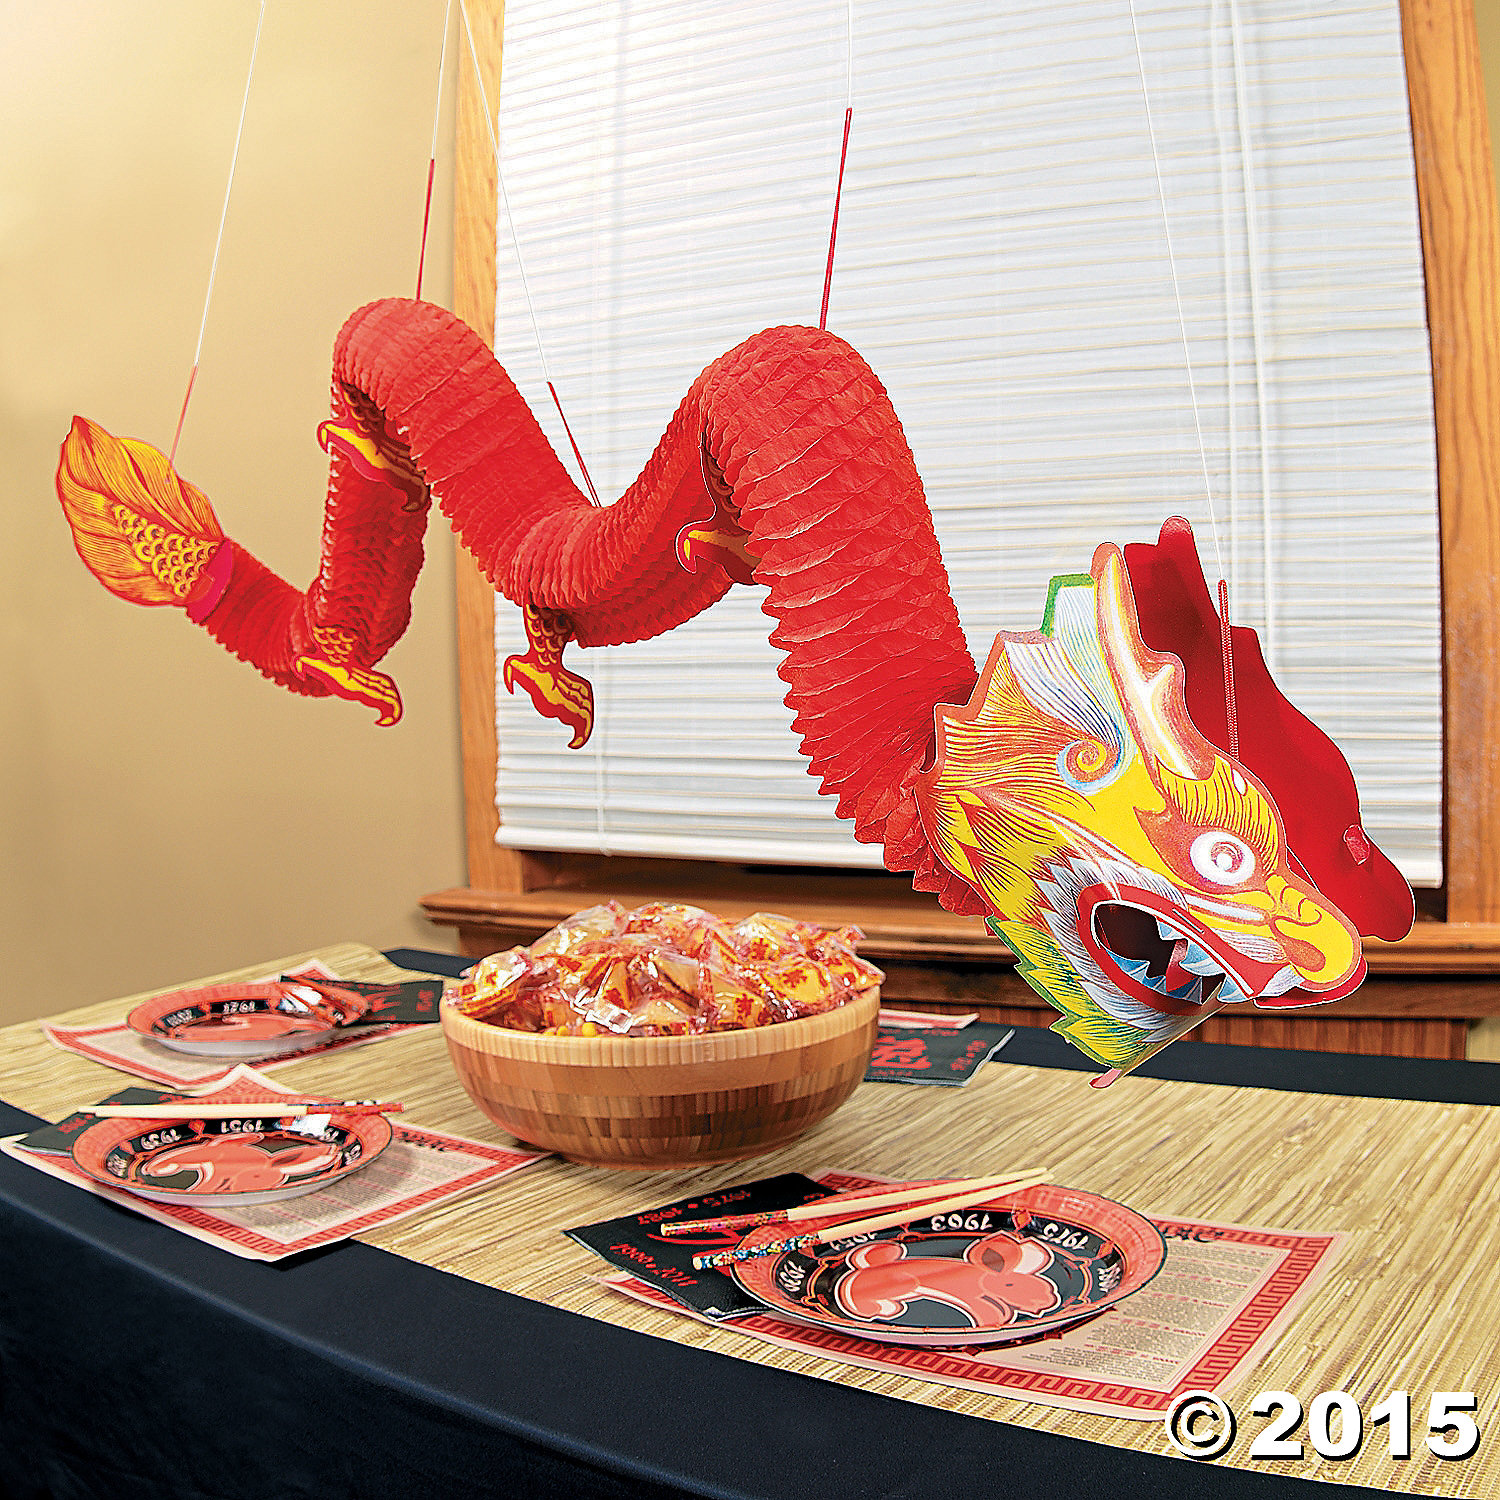 Chinese Dragon Decor Chinese New Year 2018 Decorations And Party Party Supplies